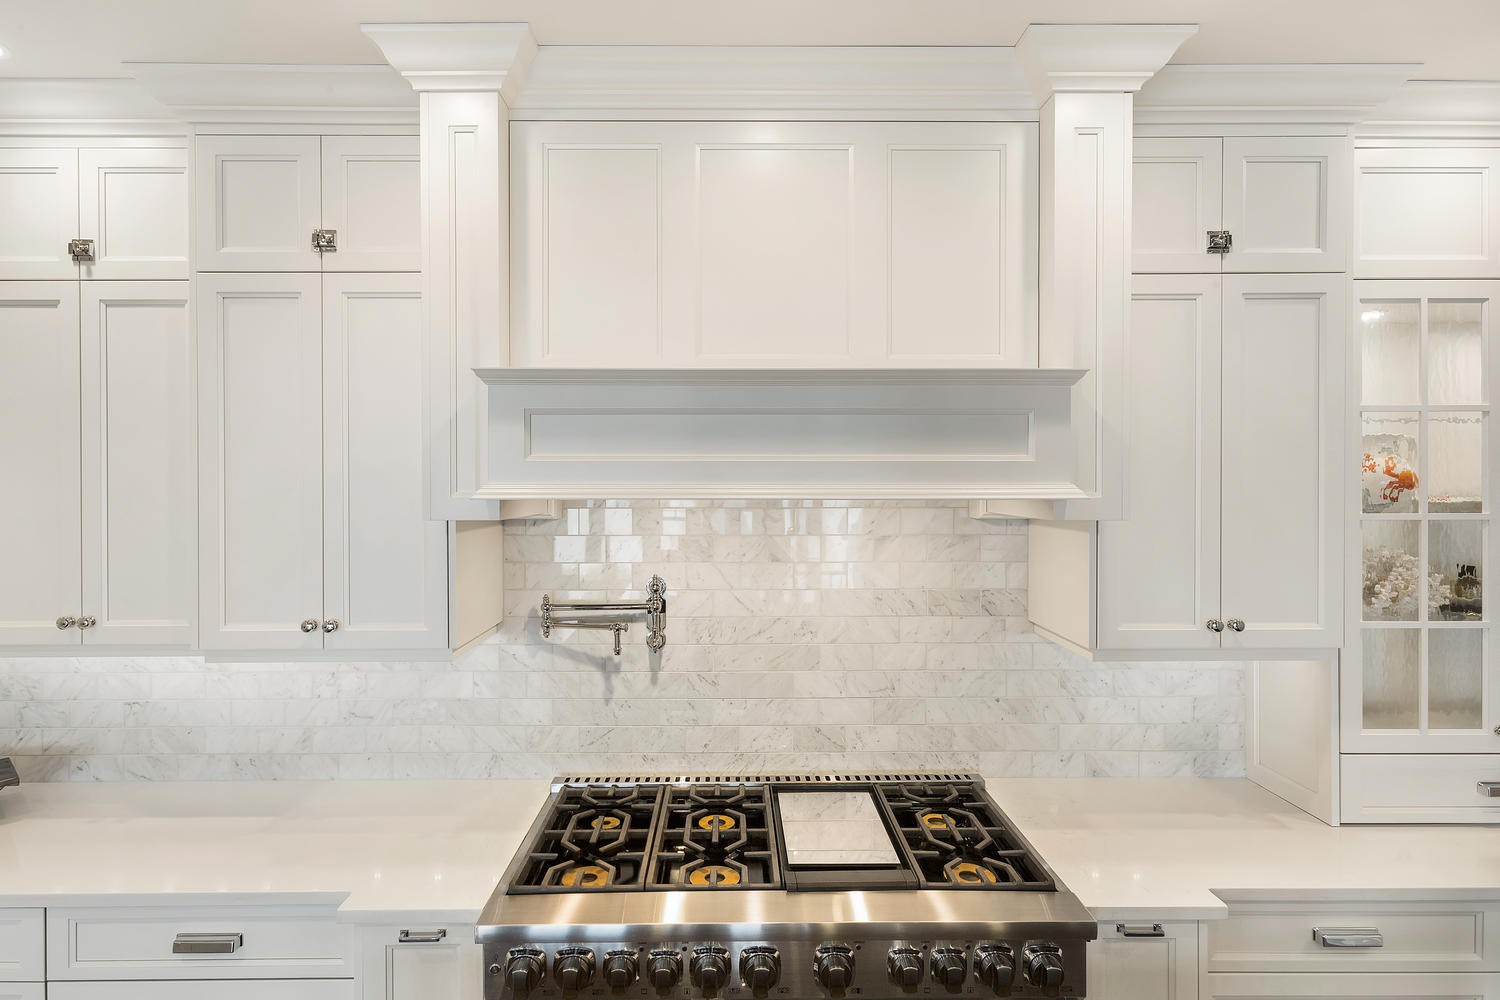 Kitchen Cabinetry | Design Line Kitchens in Sea Girt, NJ